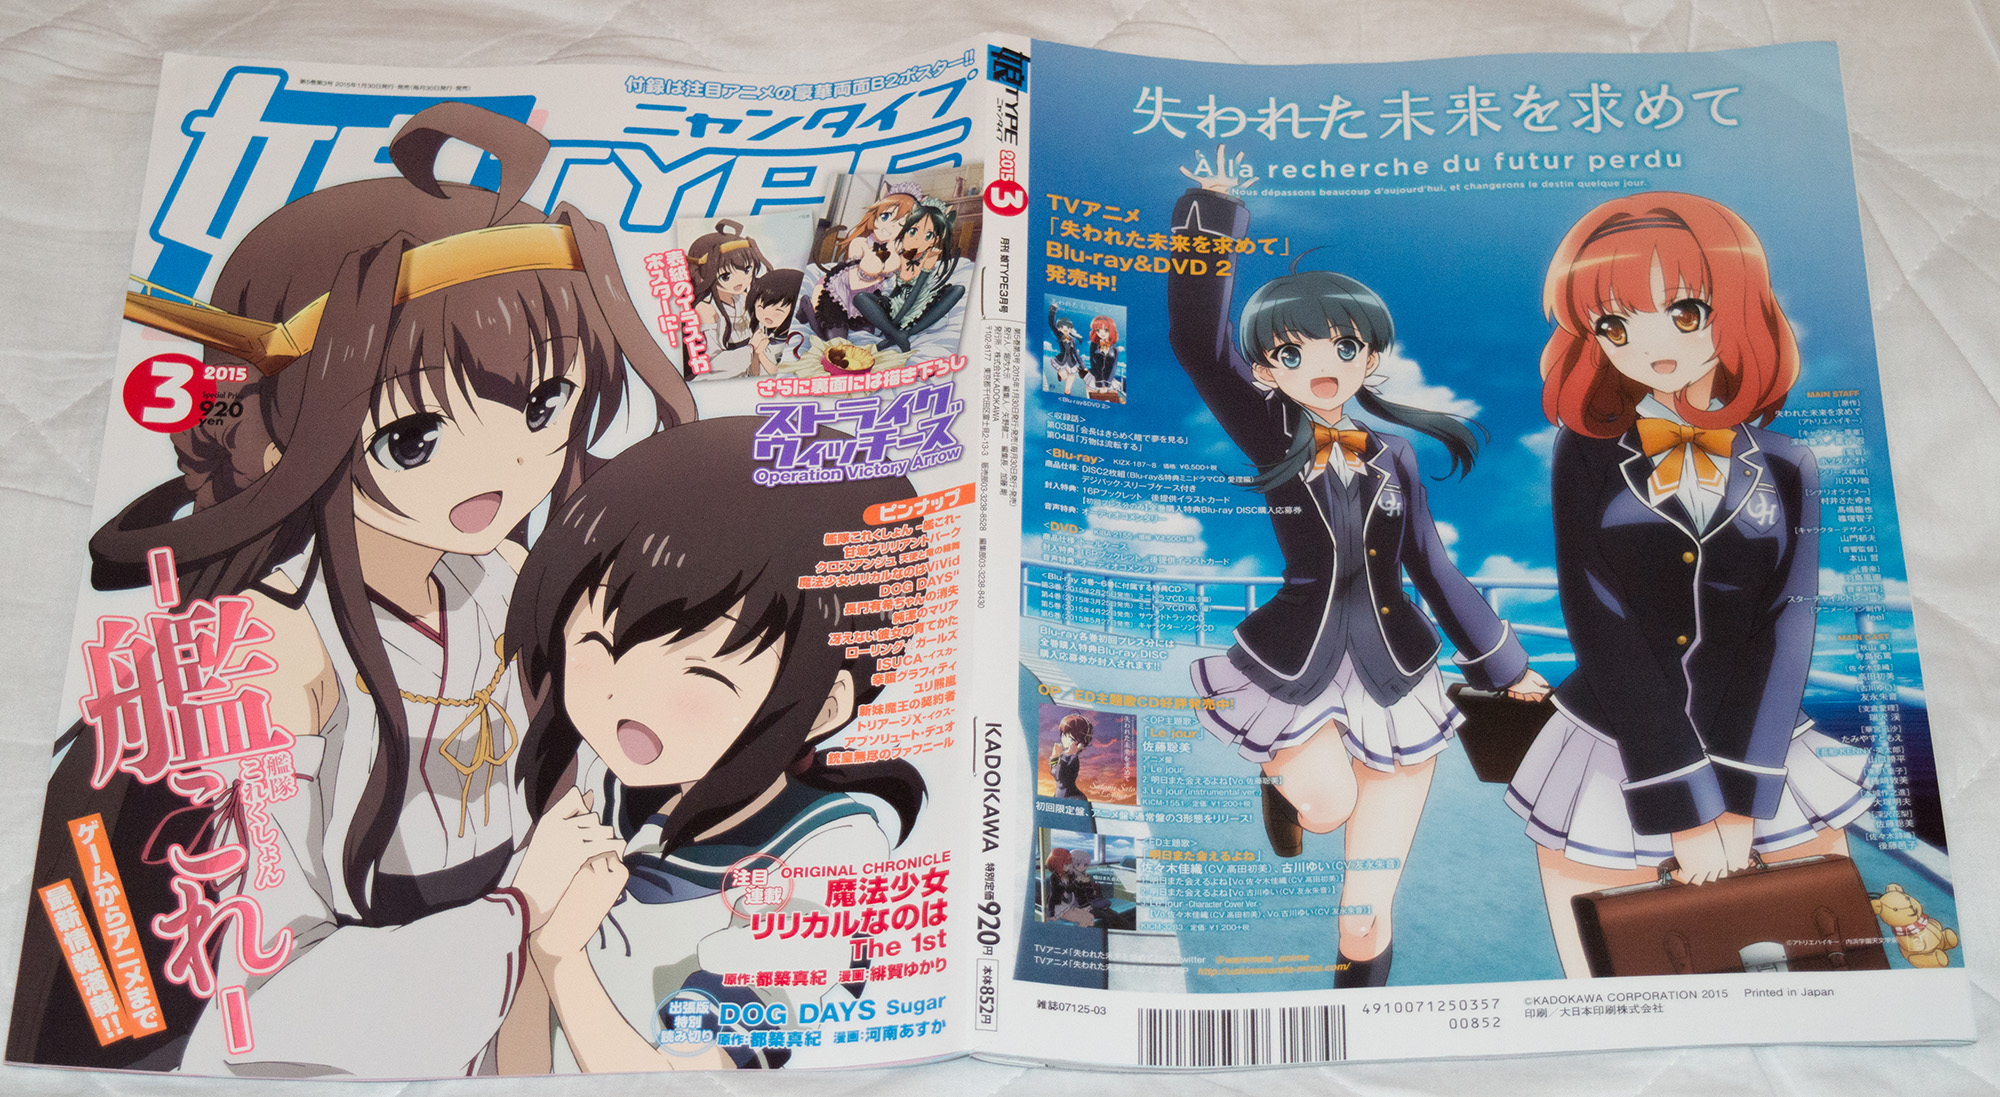 NyanType Magazine March 2015 anime posters Haruhichan.com Cover and Back